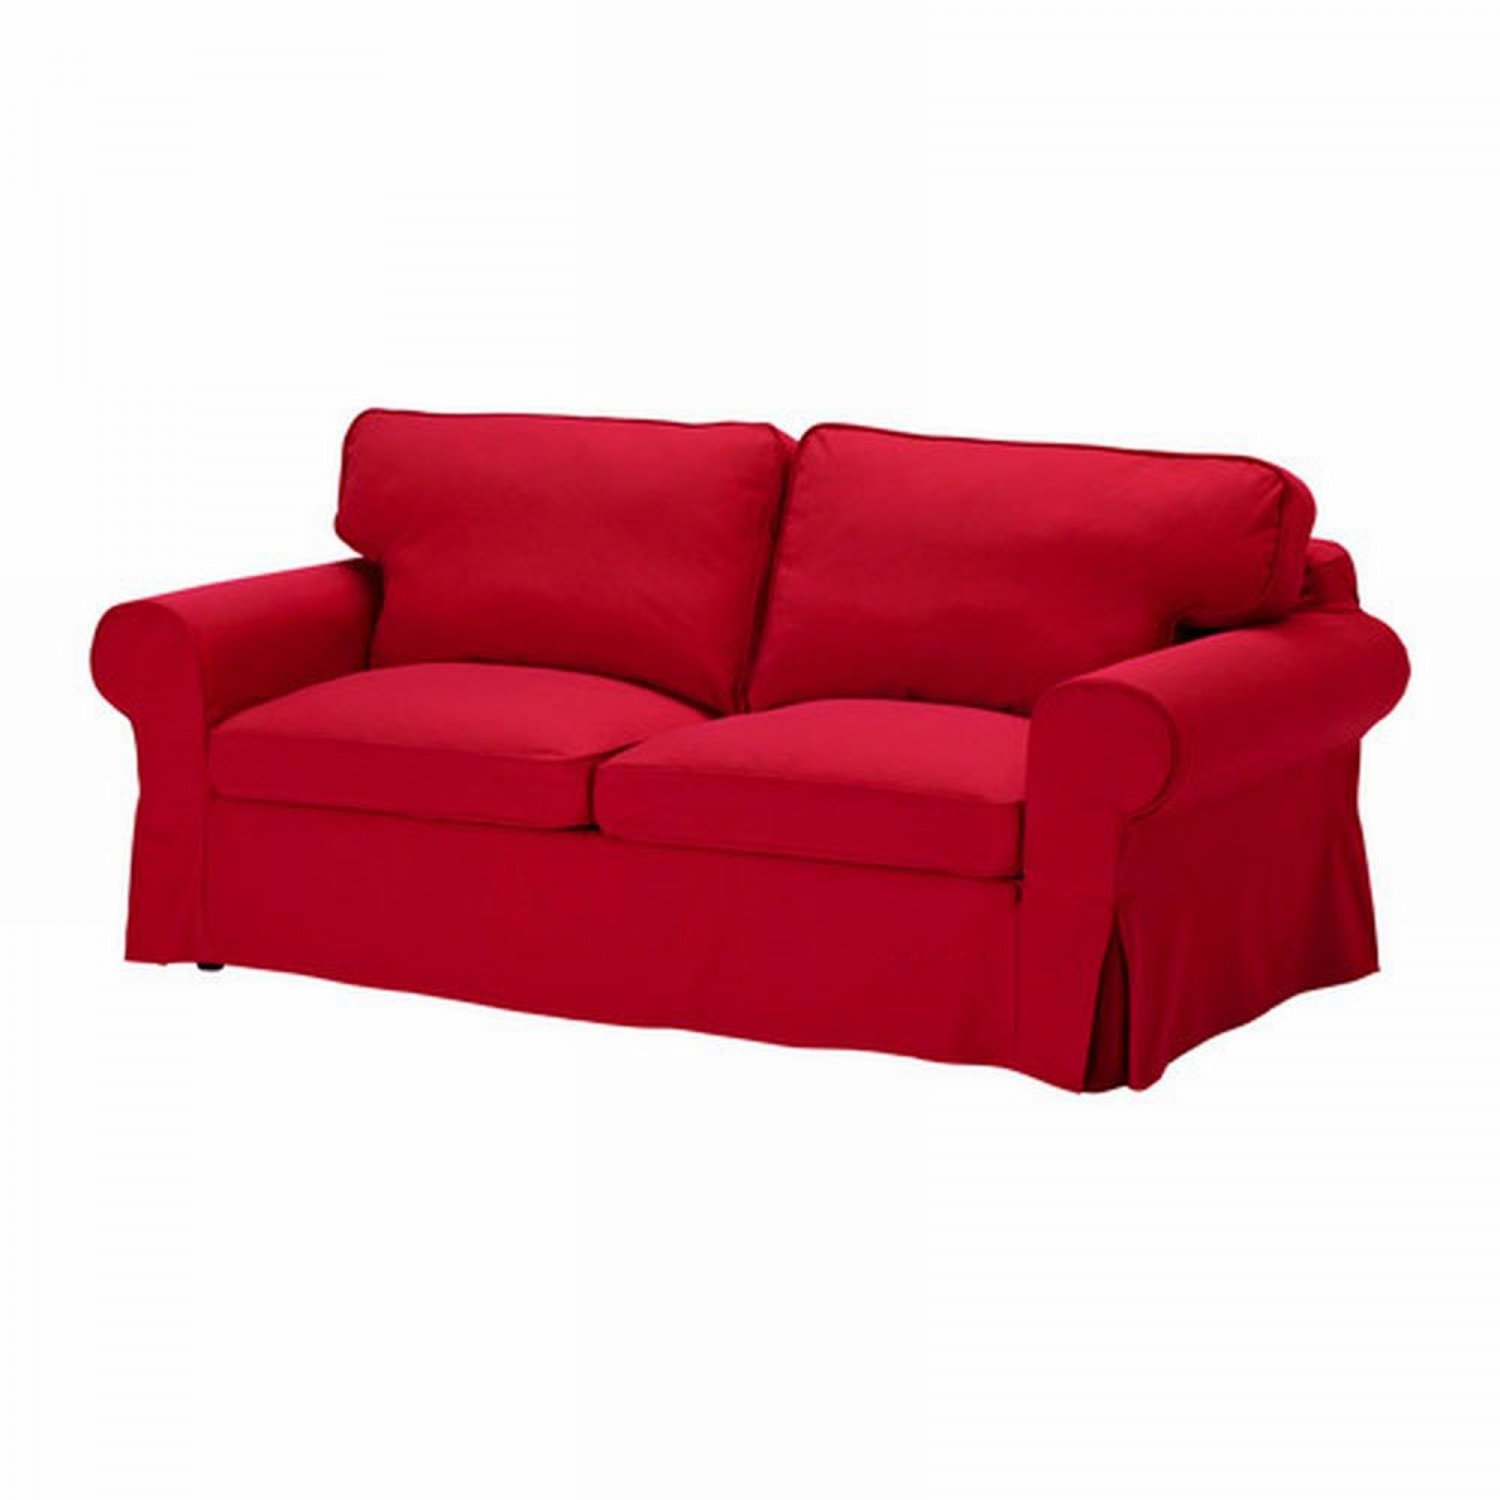 Ikea ektorp sofa bed slipcover cover idemo red sofabed cvr for Ikea sofa set